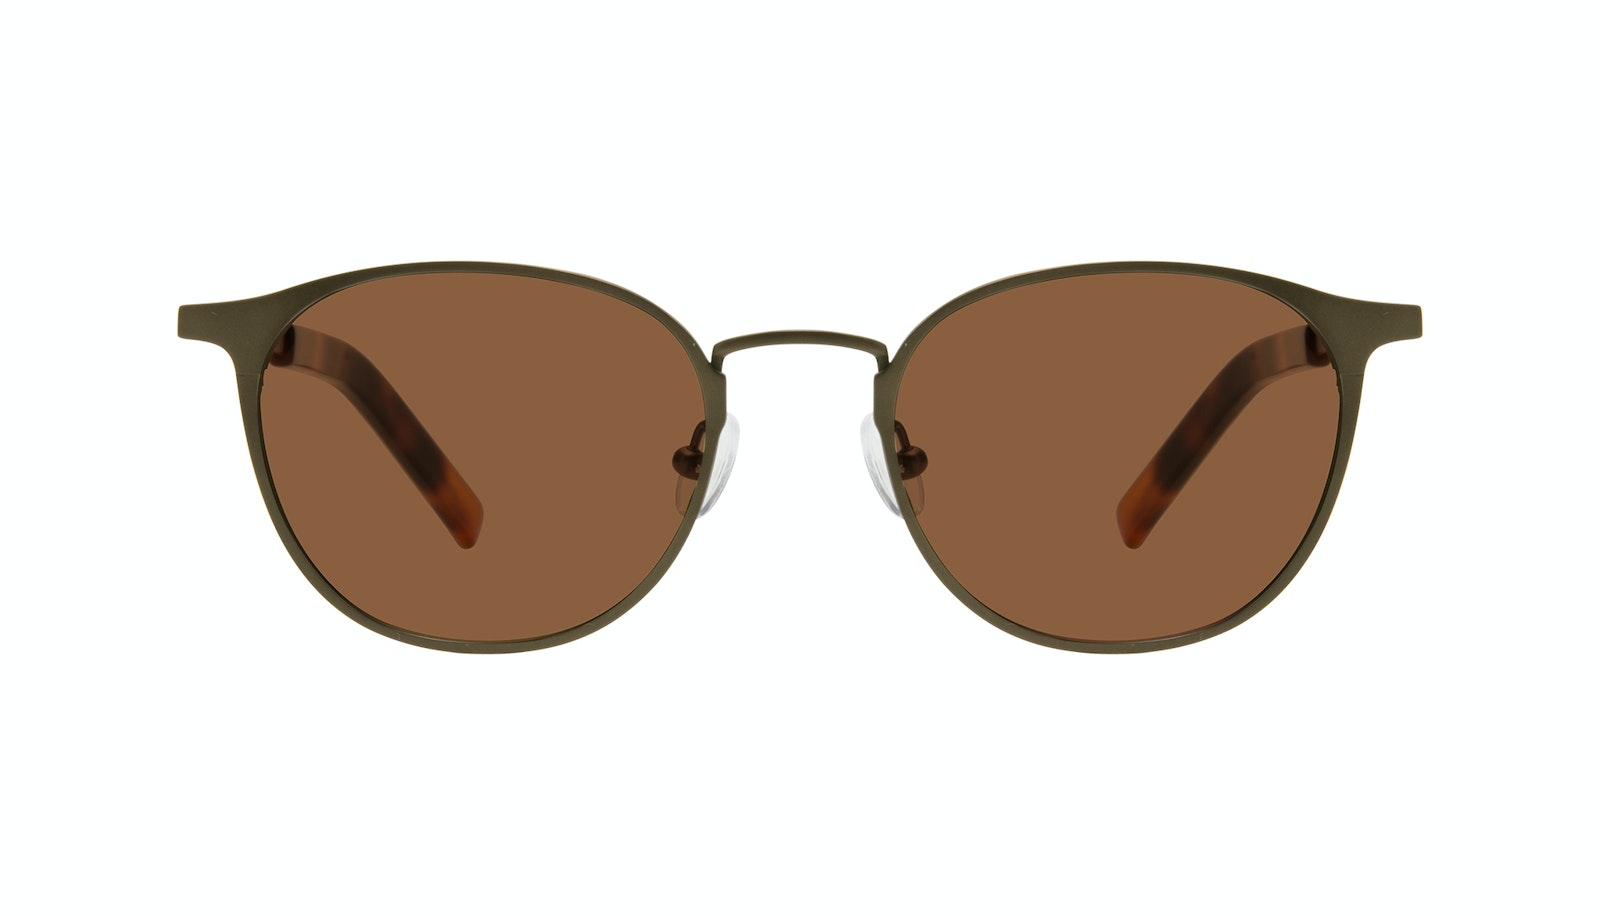 Affordable Fashion Glasses Round Sunglasses Men Point Khaki